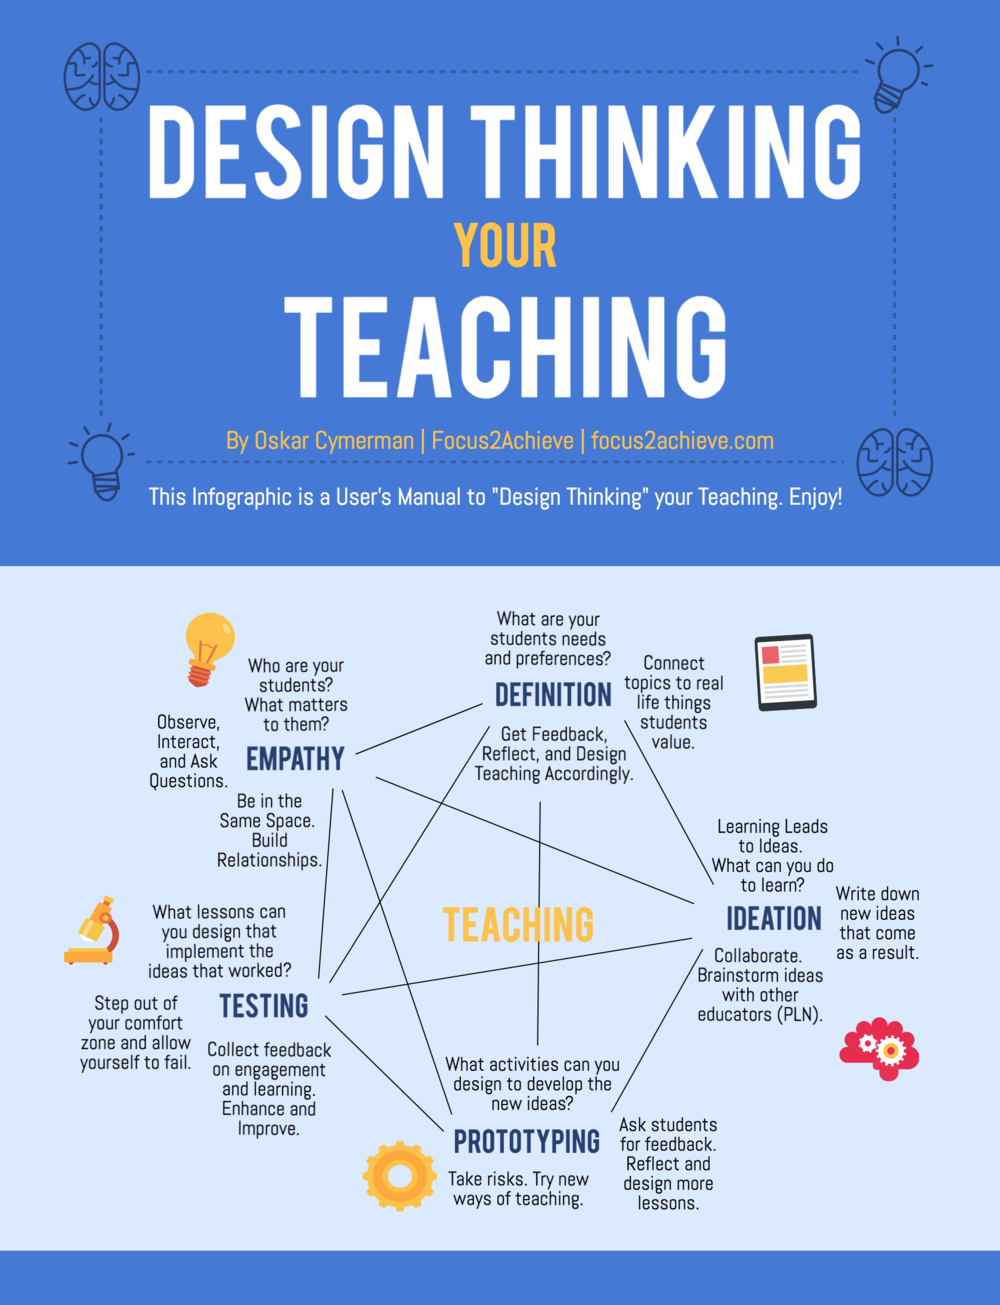 focus2achieve.com - / Oskar Cymerman - The User's Manual To Design Thinking Your Teaching (Infographic)